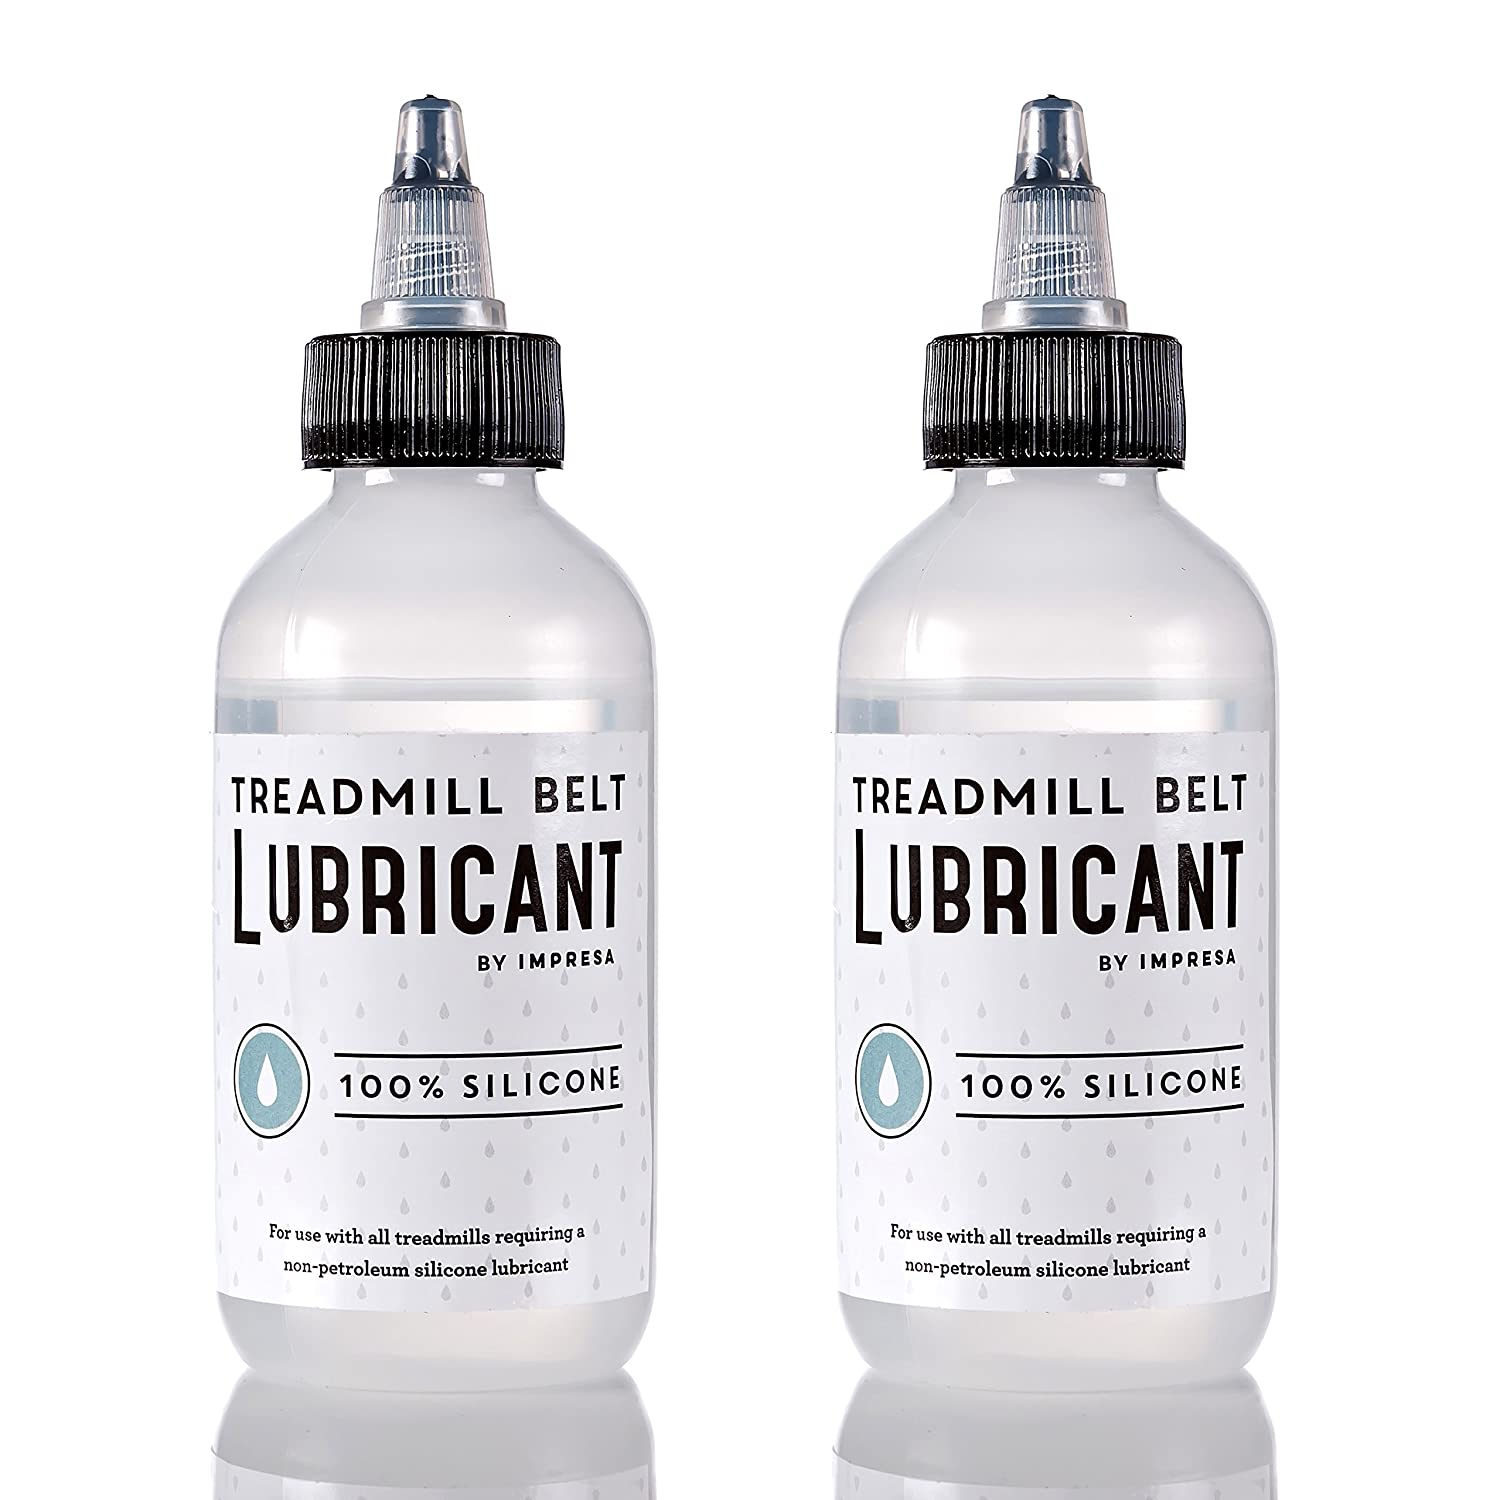 Treadmill Silicone Lubricant Walmart: 2 Pack Of 100% Silicone Treadmill Belt Lubricant / Lube